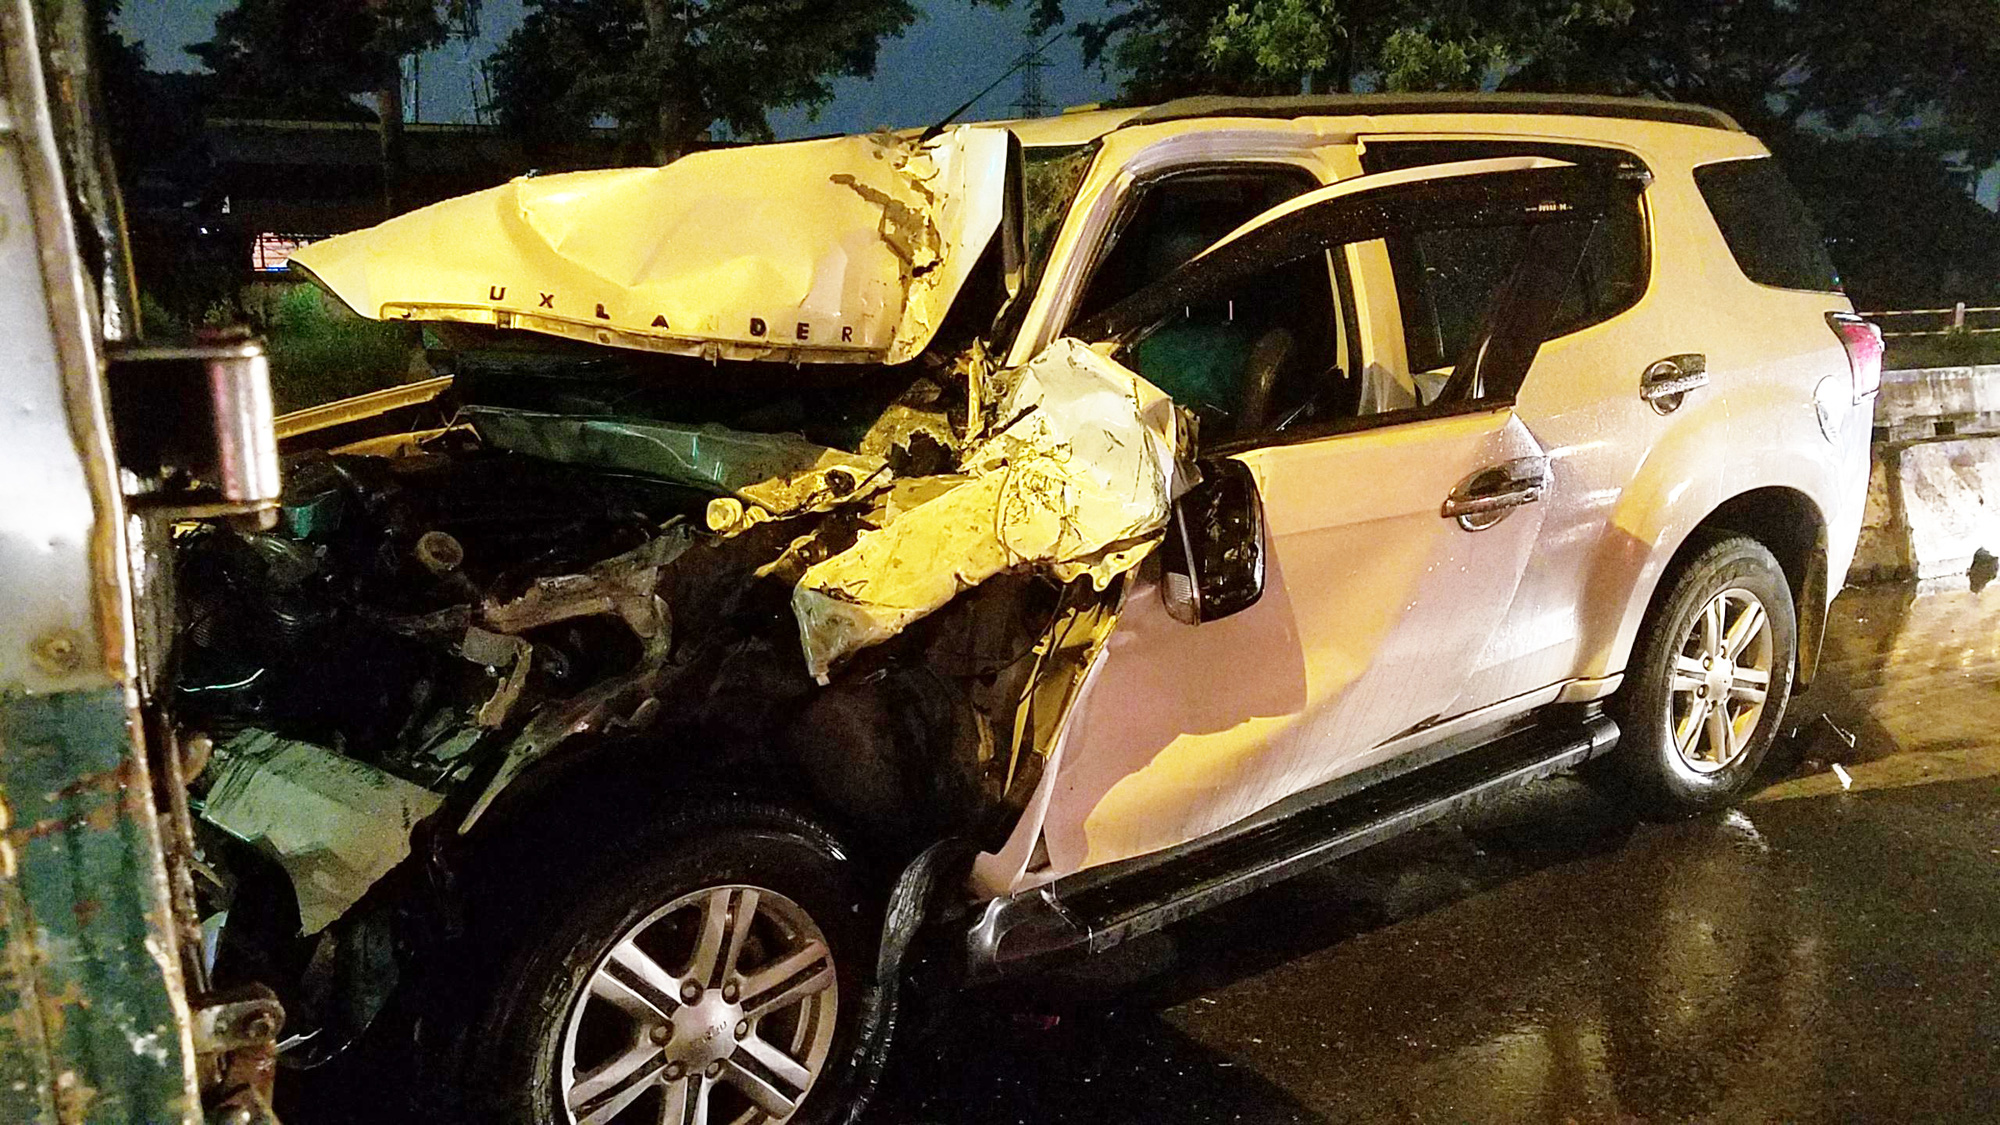 A seven-seater car is seriously damaged following a crash on No. 7 Street in Vinh Loc Industrial Park, Binh Tan District, Ho Chi Minh City, September 6, 2020. Photo: A.X. / Tuoi Tre